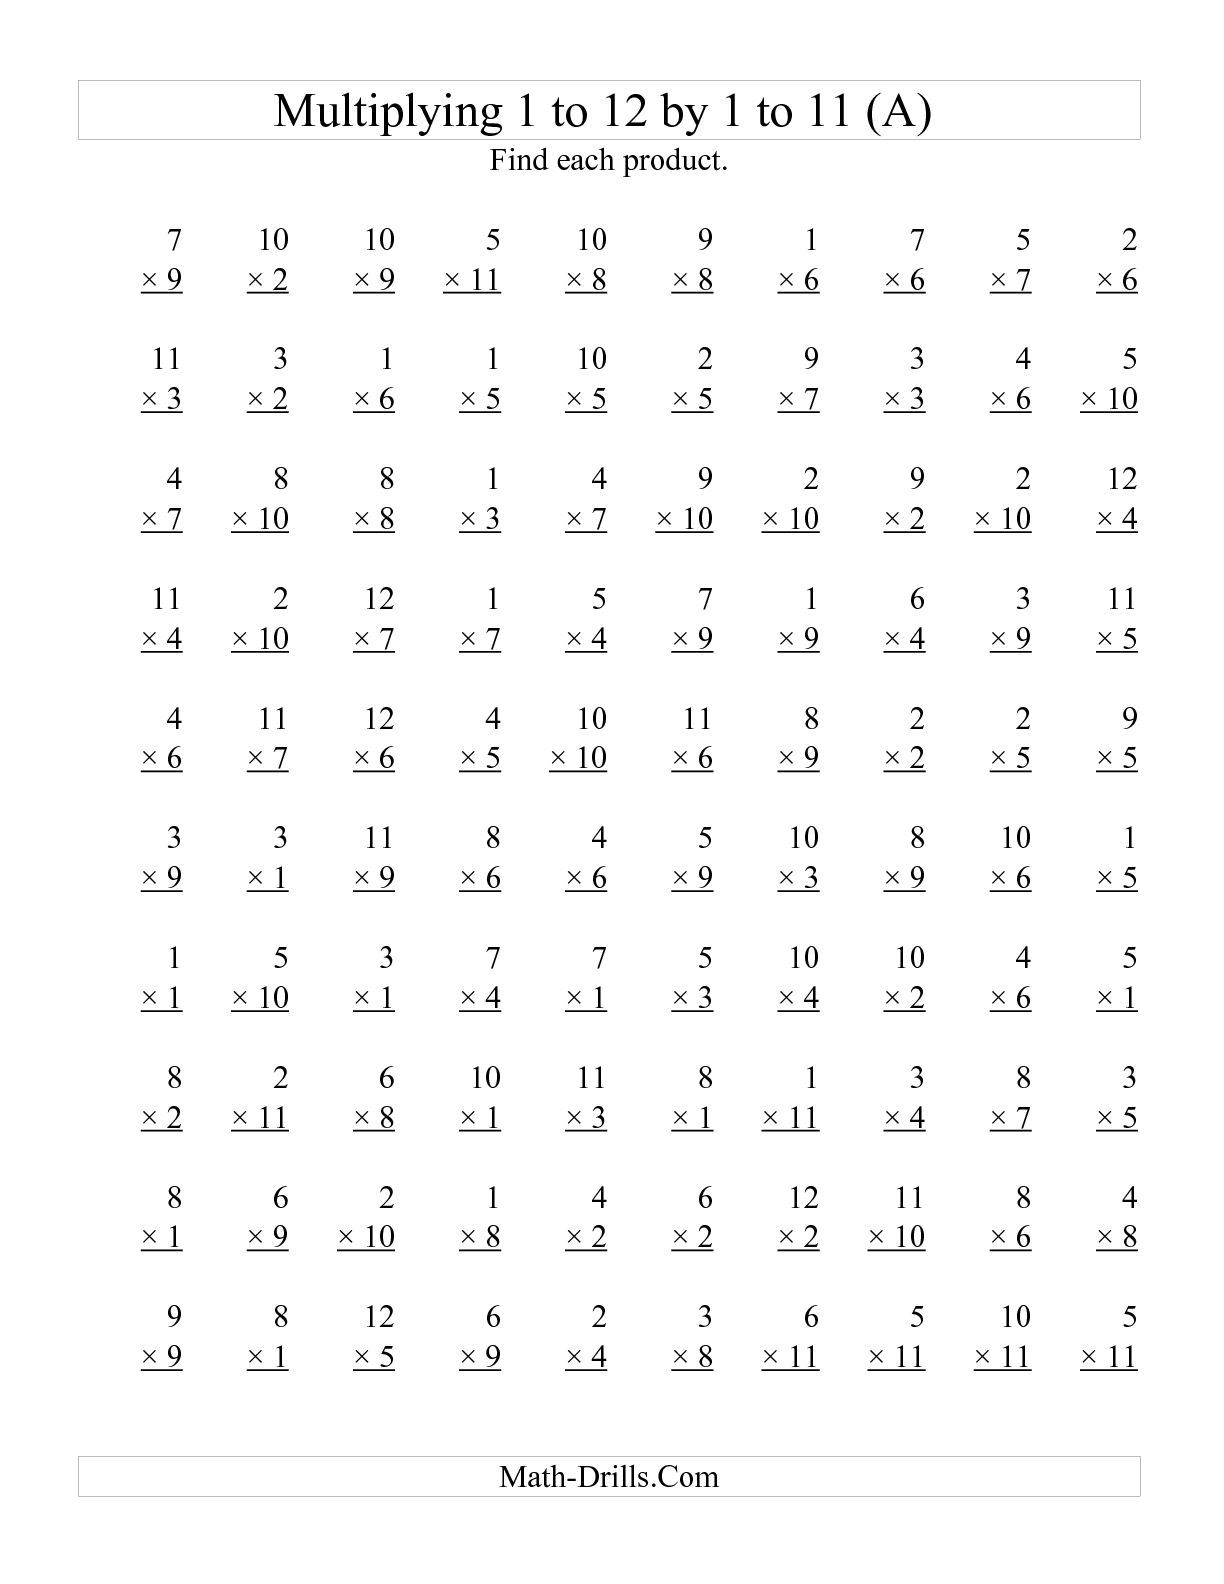 The 100 Vertical Questions Multiplying 1 To 12 By 1 To